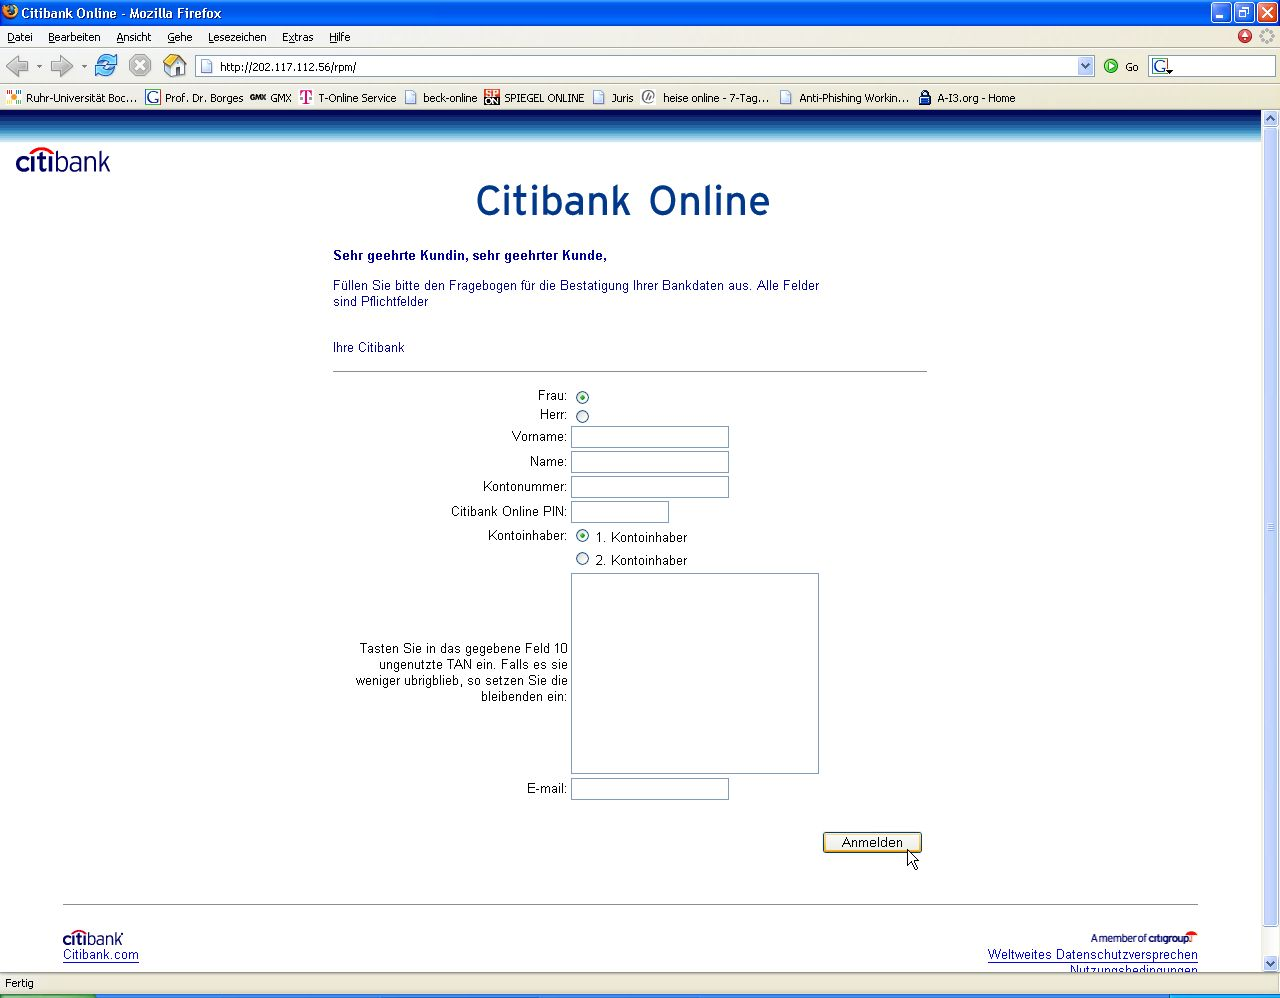 05_07_25_citibank_website.jpg